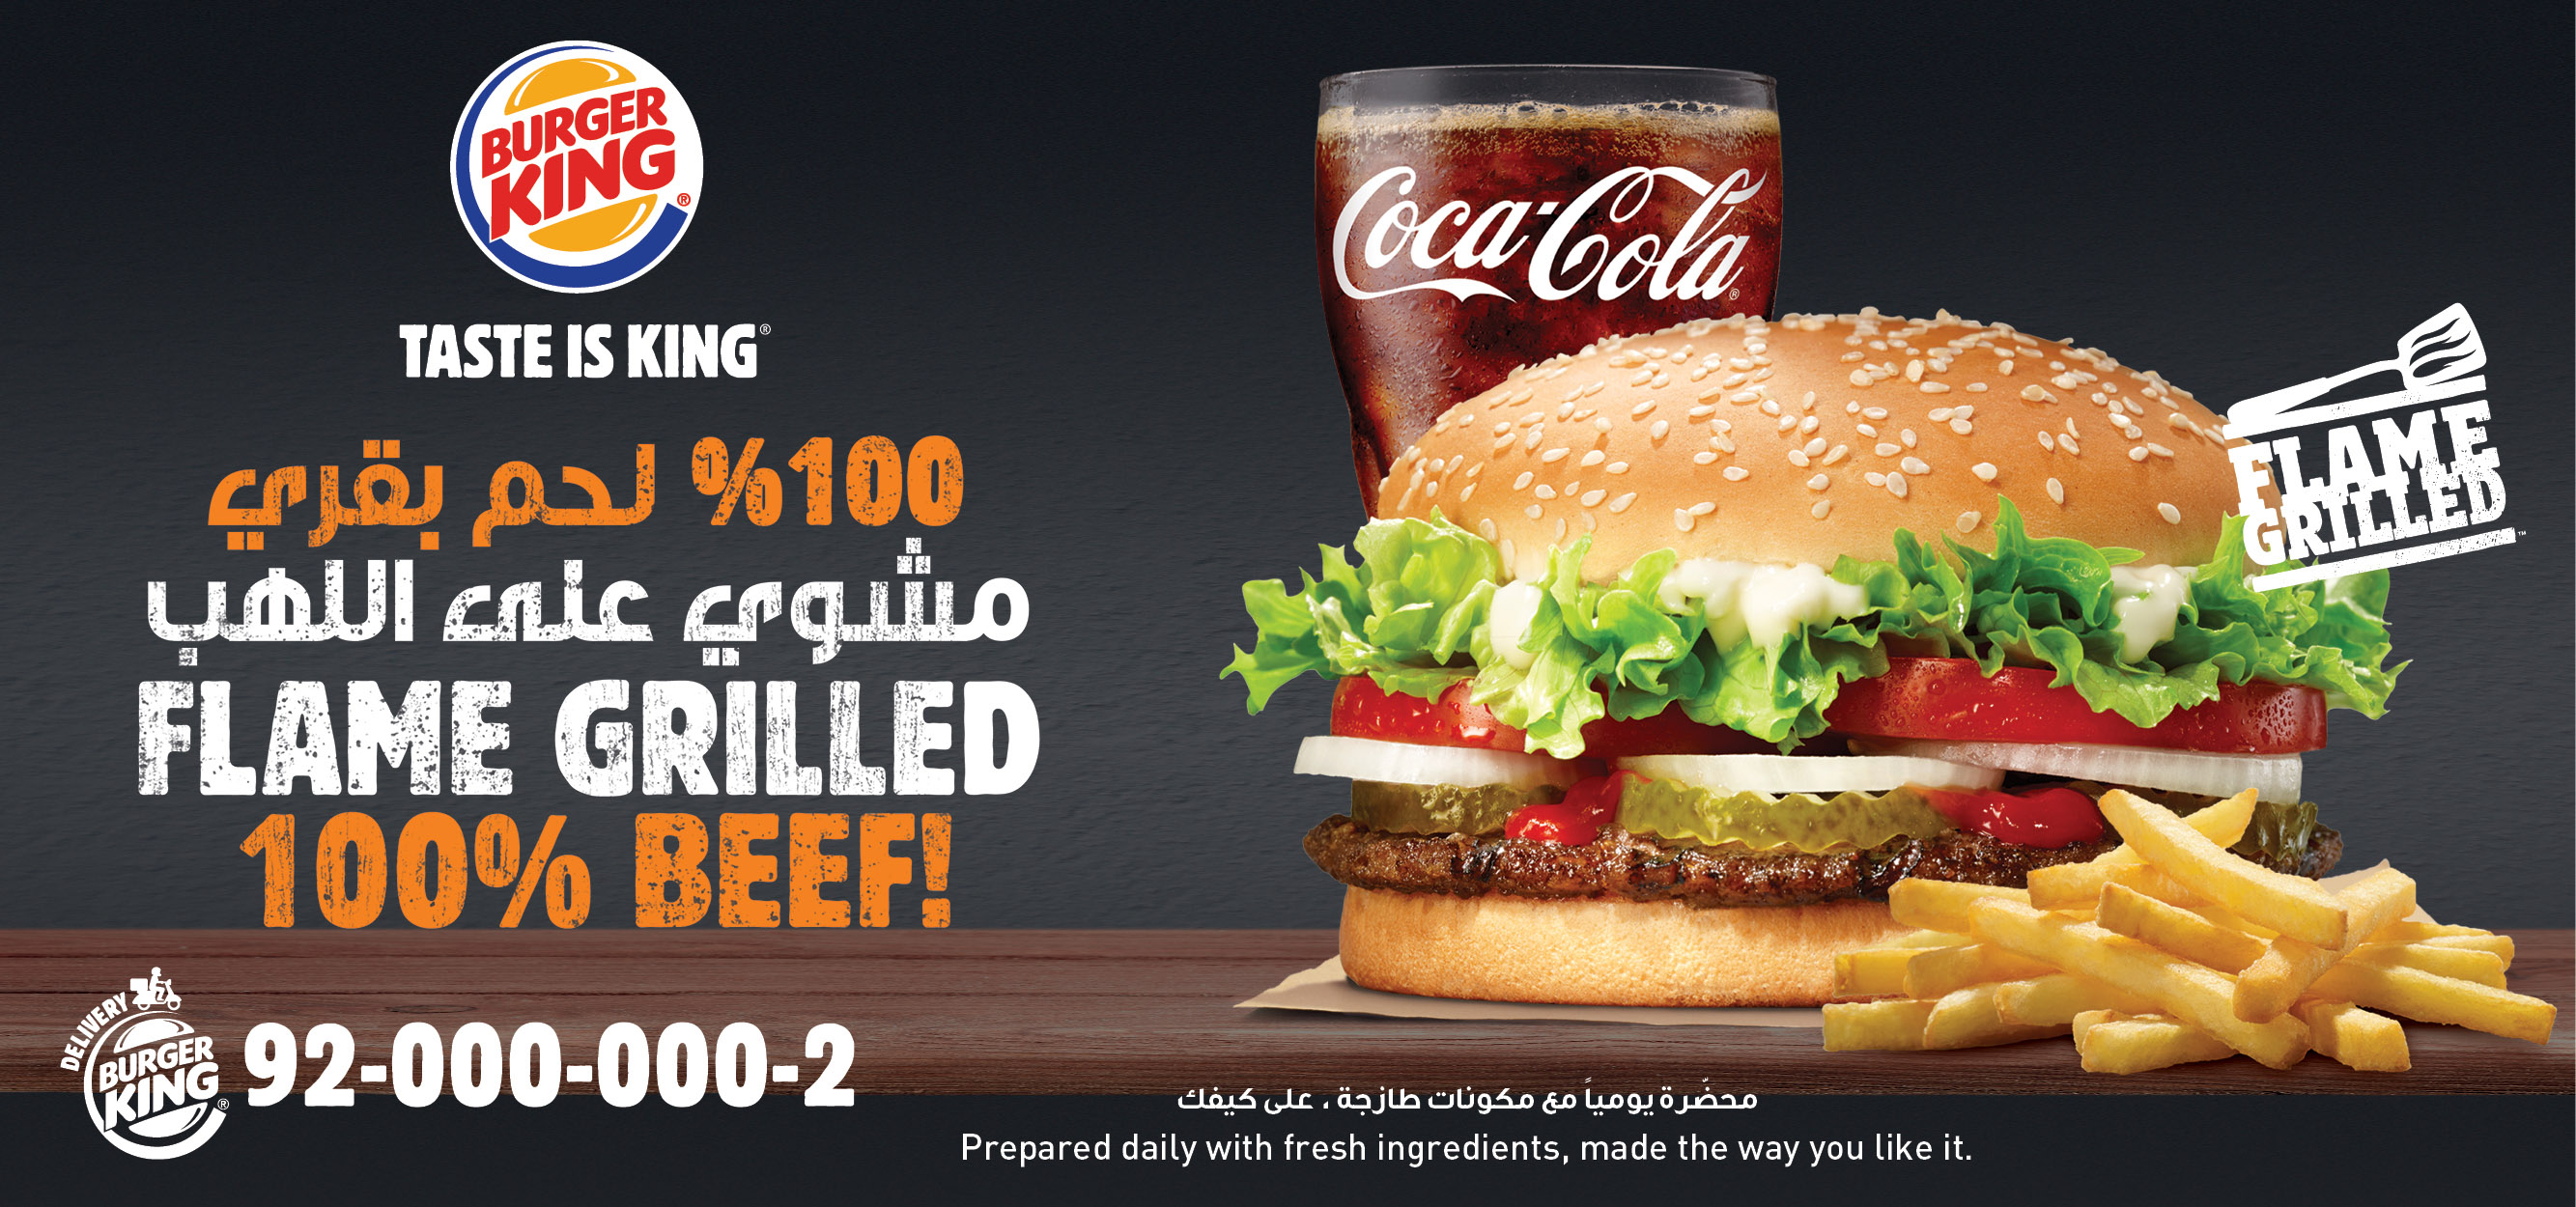 The restaurant chain BURGER KING® in the Middle East and North Africa is operated by Hana International Company Limited, a subsidiary of Olayan Financing Company. The company operates over 400 restaurants in the region through a variety of local companies owning a BURGER KING® franchise. All the restaurants are committed to providing the customers with the most popular grilled WHOPPER® sandwich worldwide. All burgers served by BURGER KING® restaurants in the Middle East and North Africa are made